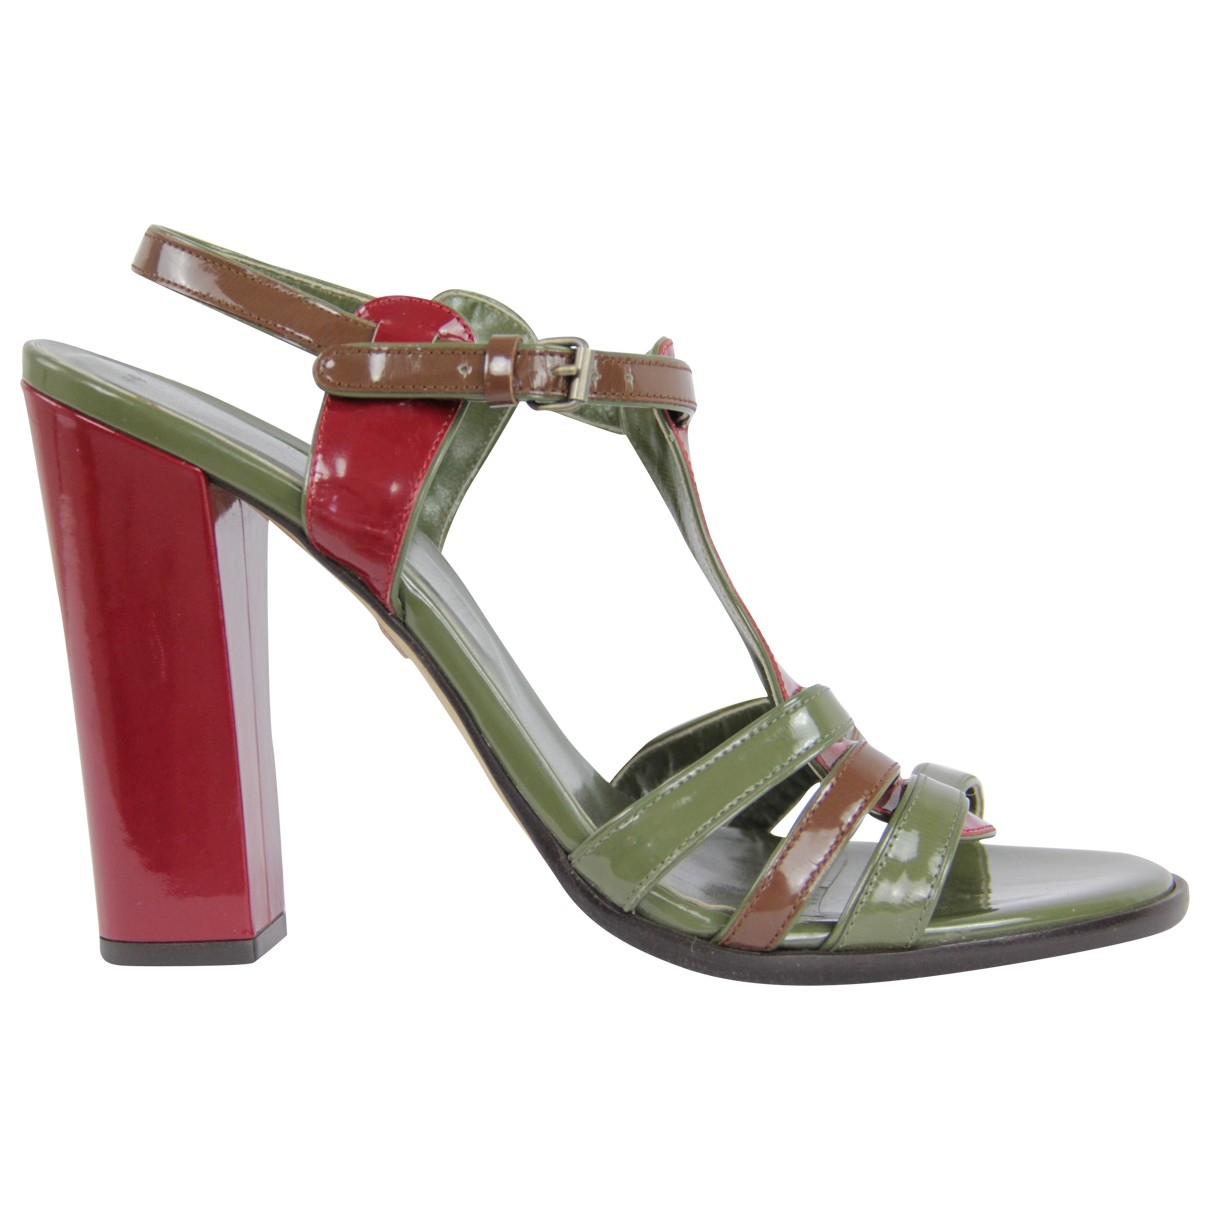 Bally \N Multicolour Patent leather Sandals for Women 39.5 EU